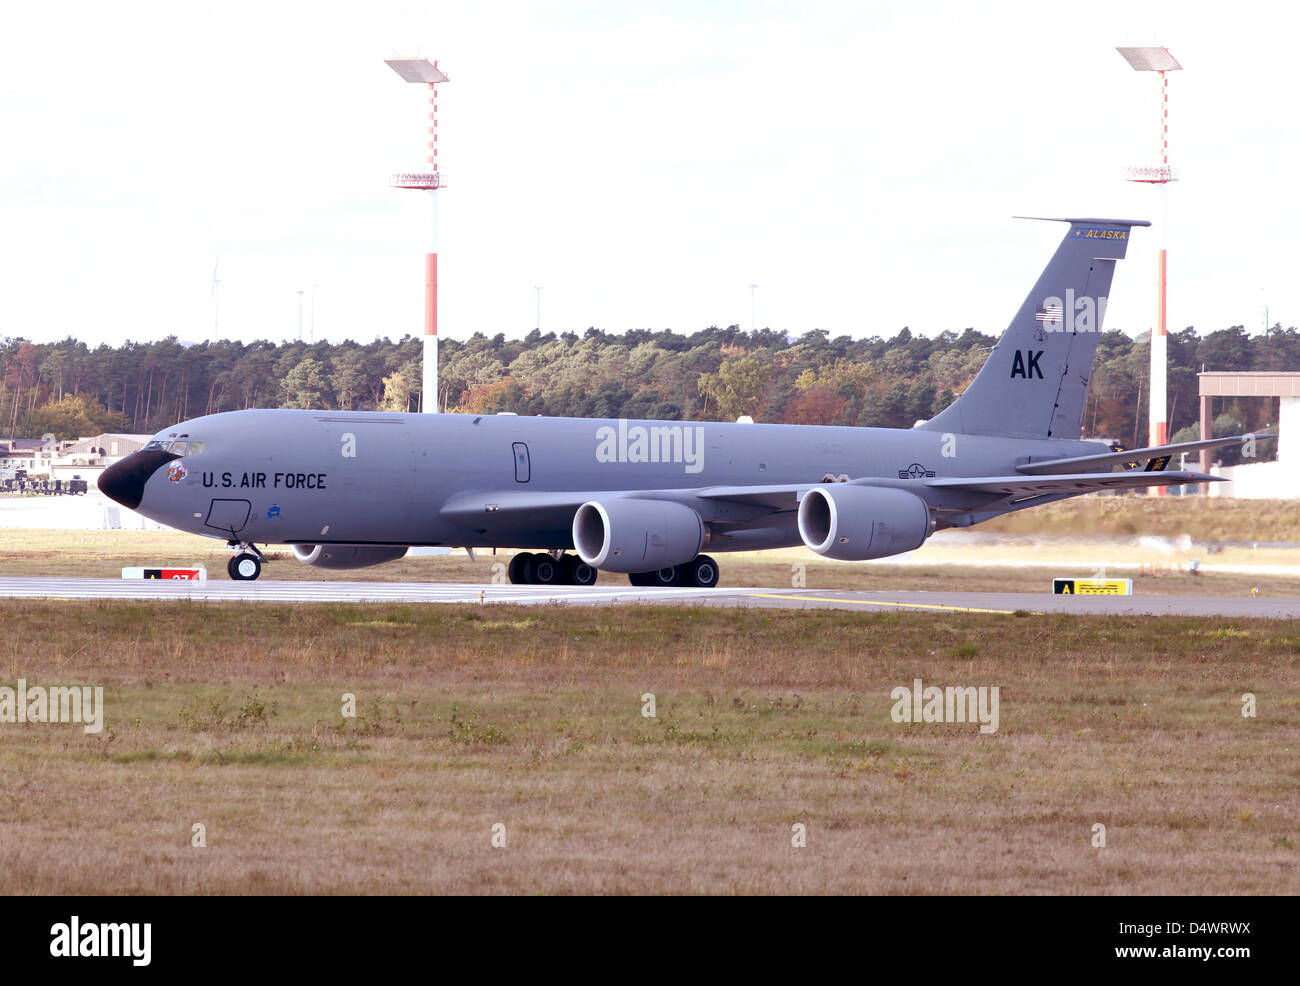 A KC-135R Stratotanker of the Alaska National Guard's 168th ARS taxiing at Ramstein Air Base, Germany. - Stock Image